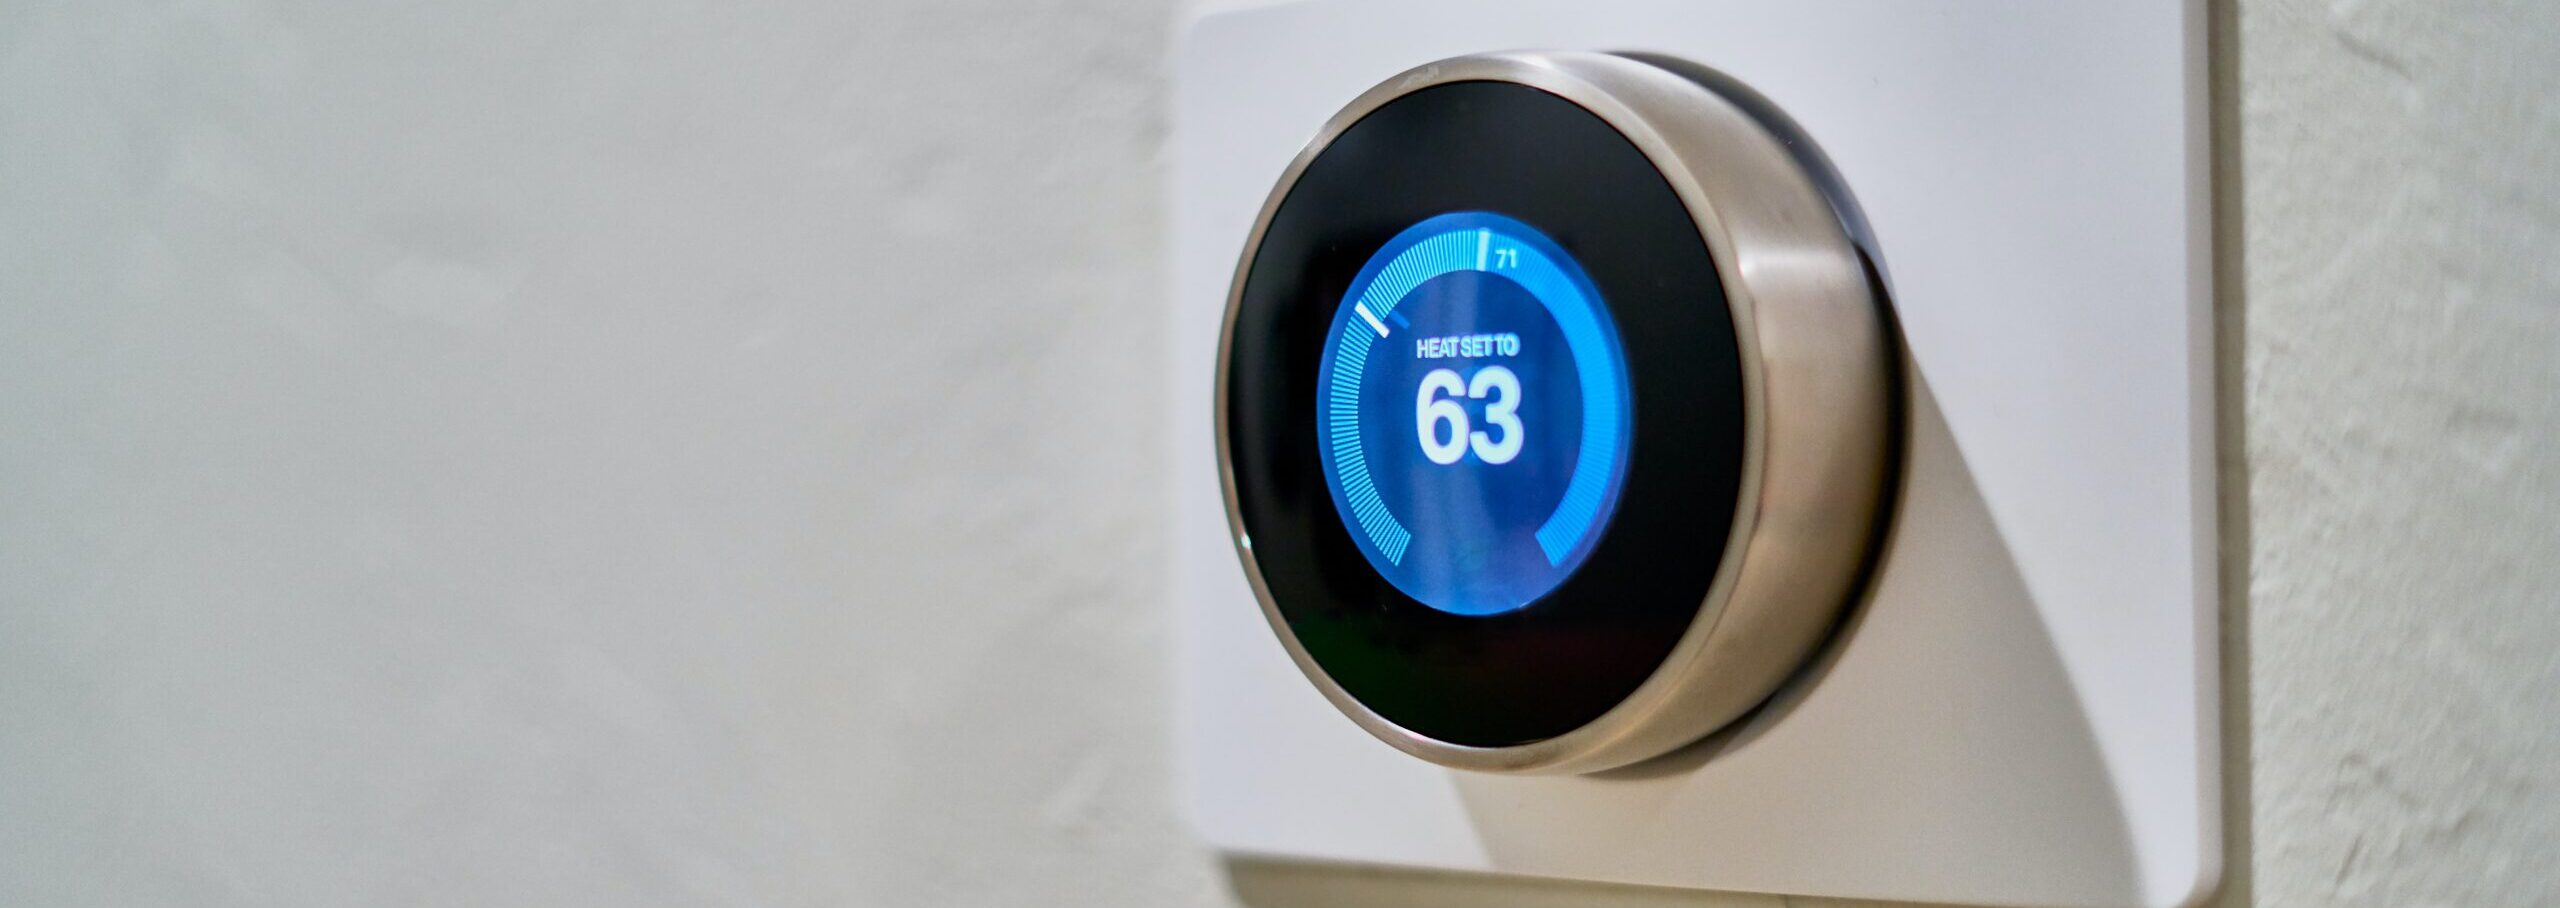 programmable thermostat smart home